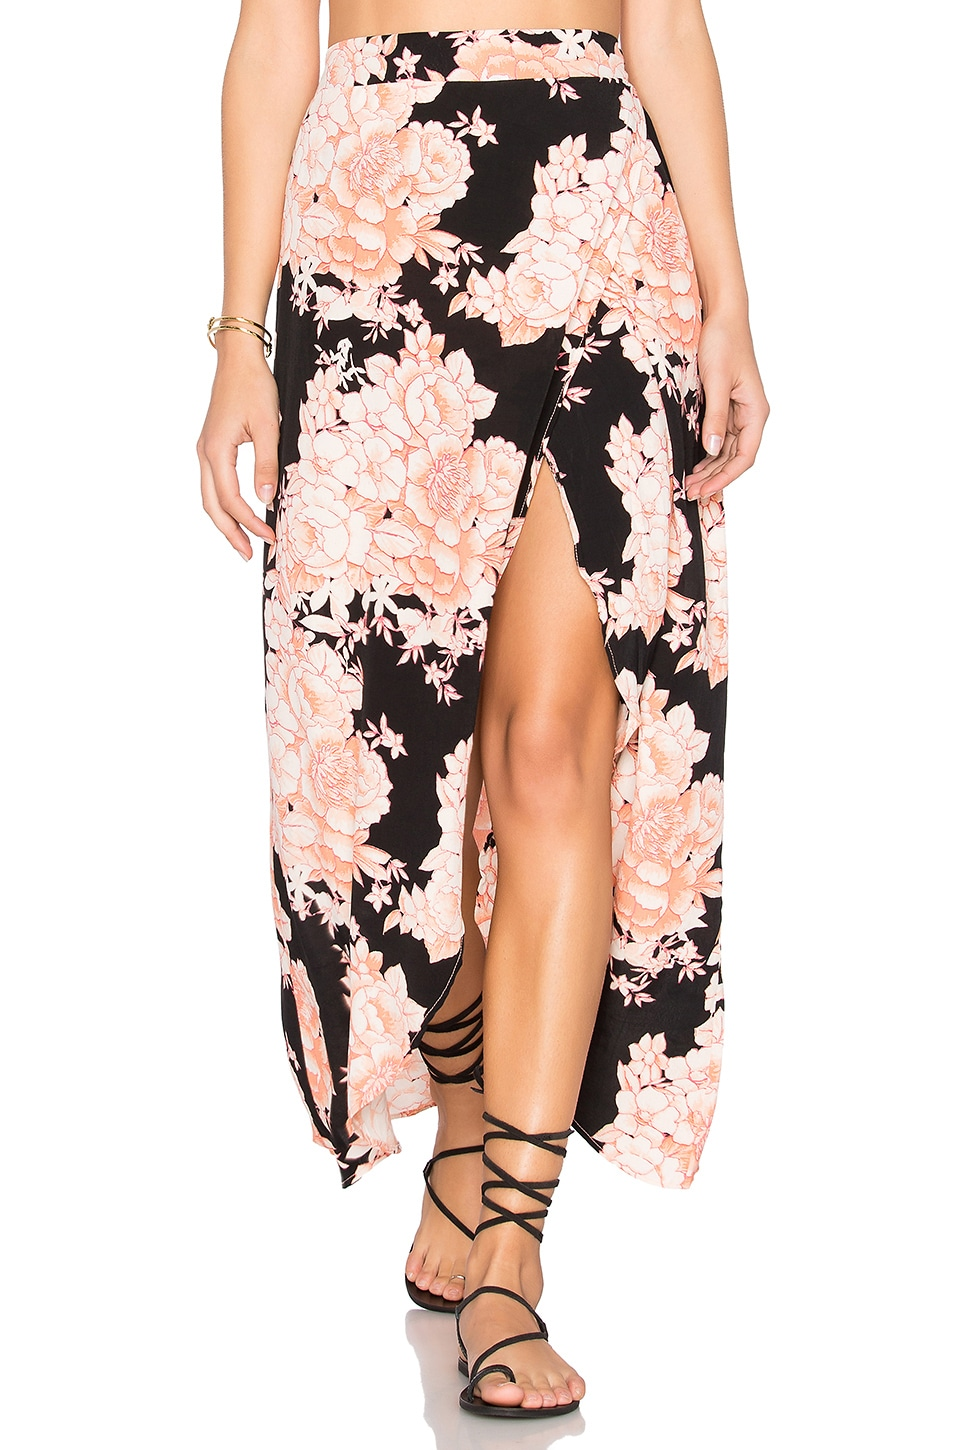 Cleobella Jack Wrap Skirt in Dusty Rose